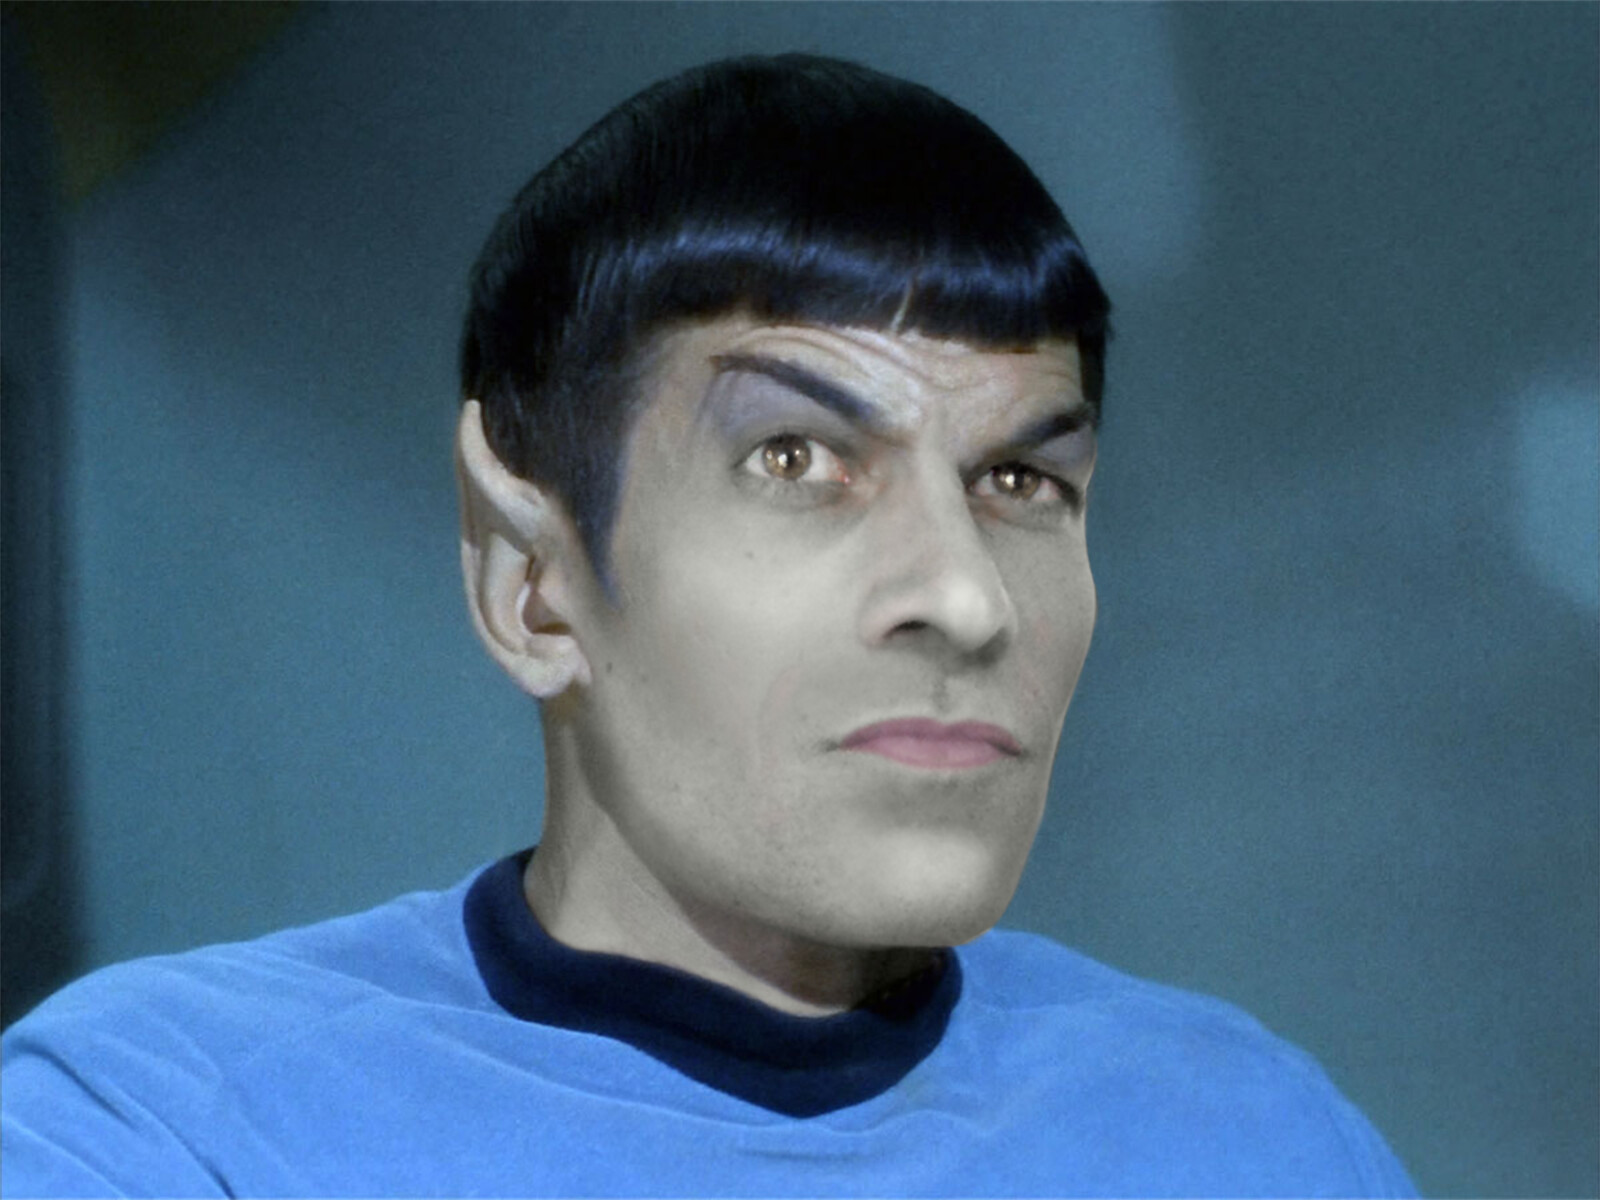 My face blended with Spock's face.